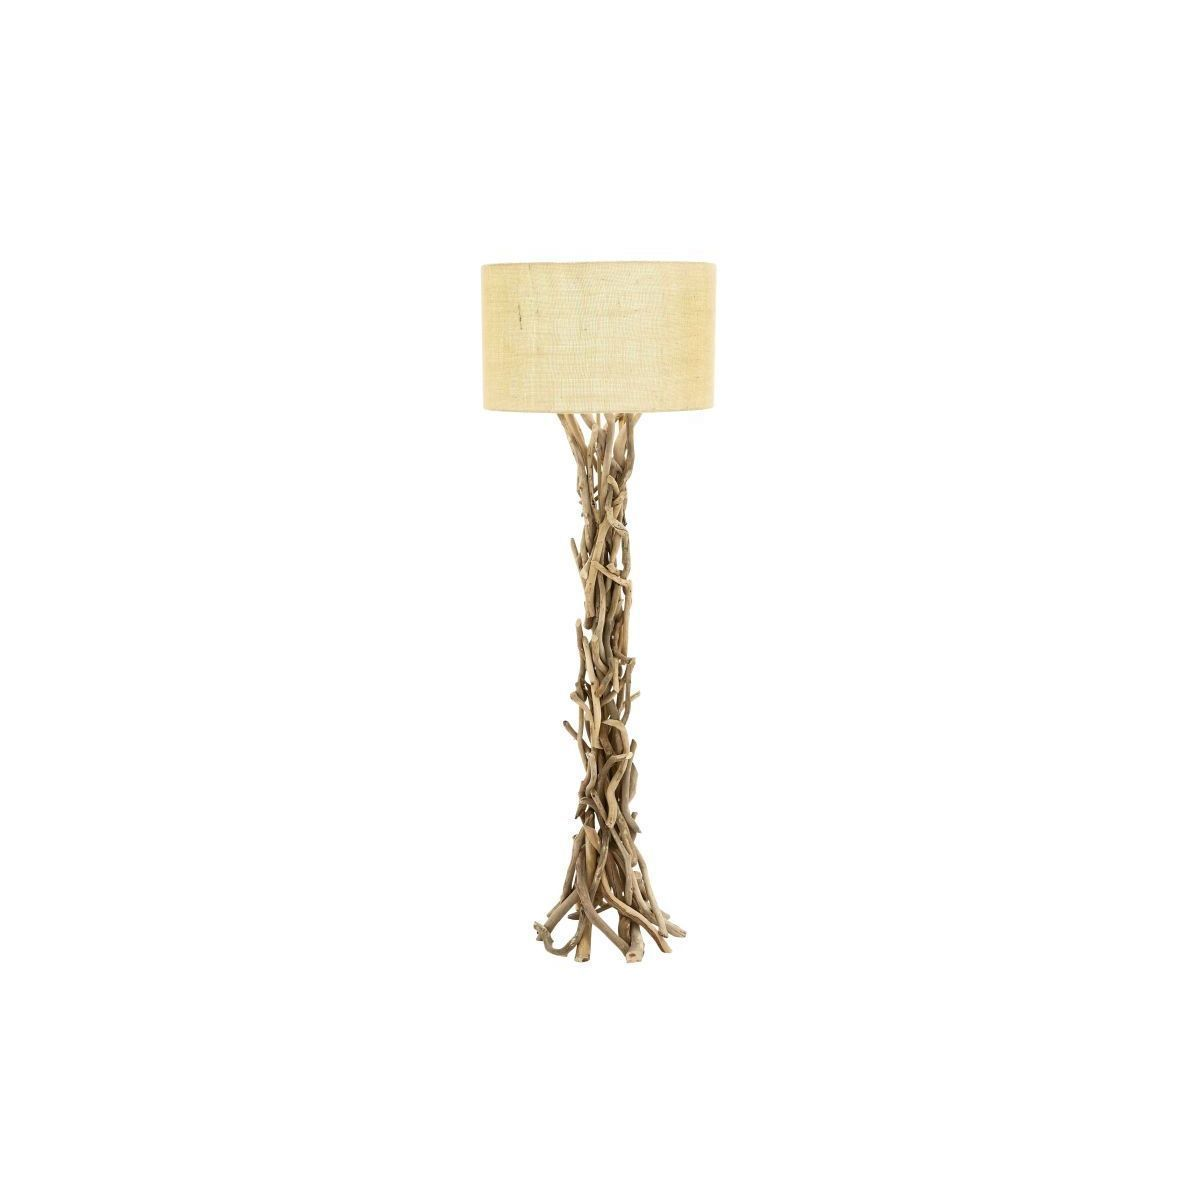 floor lamp attractive of ideas photos presenting glasess with lamps artistic driftwood lighting design